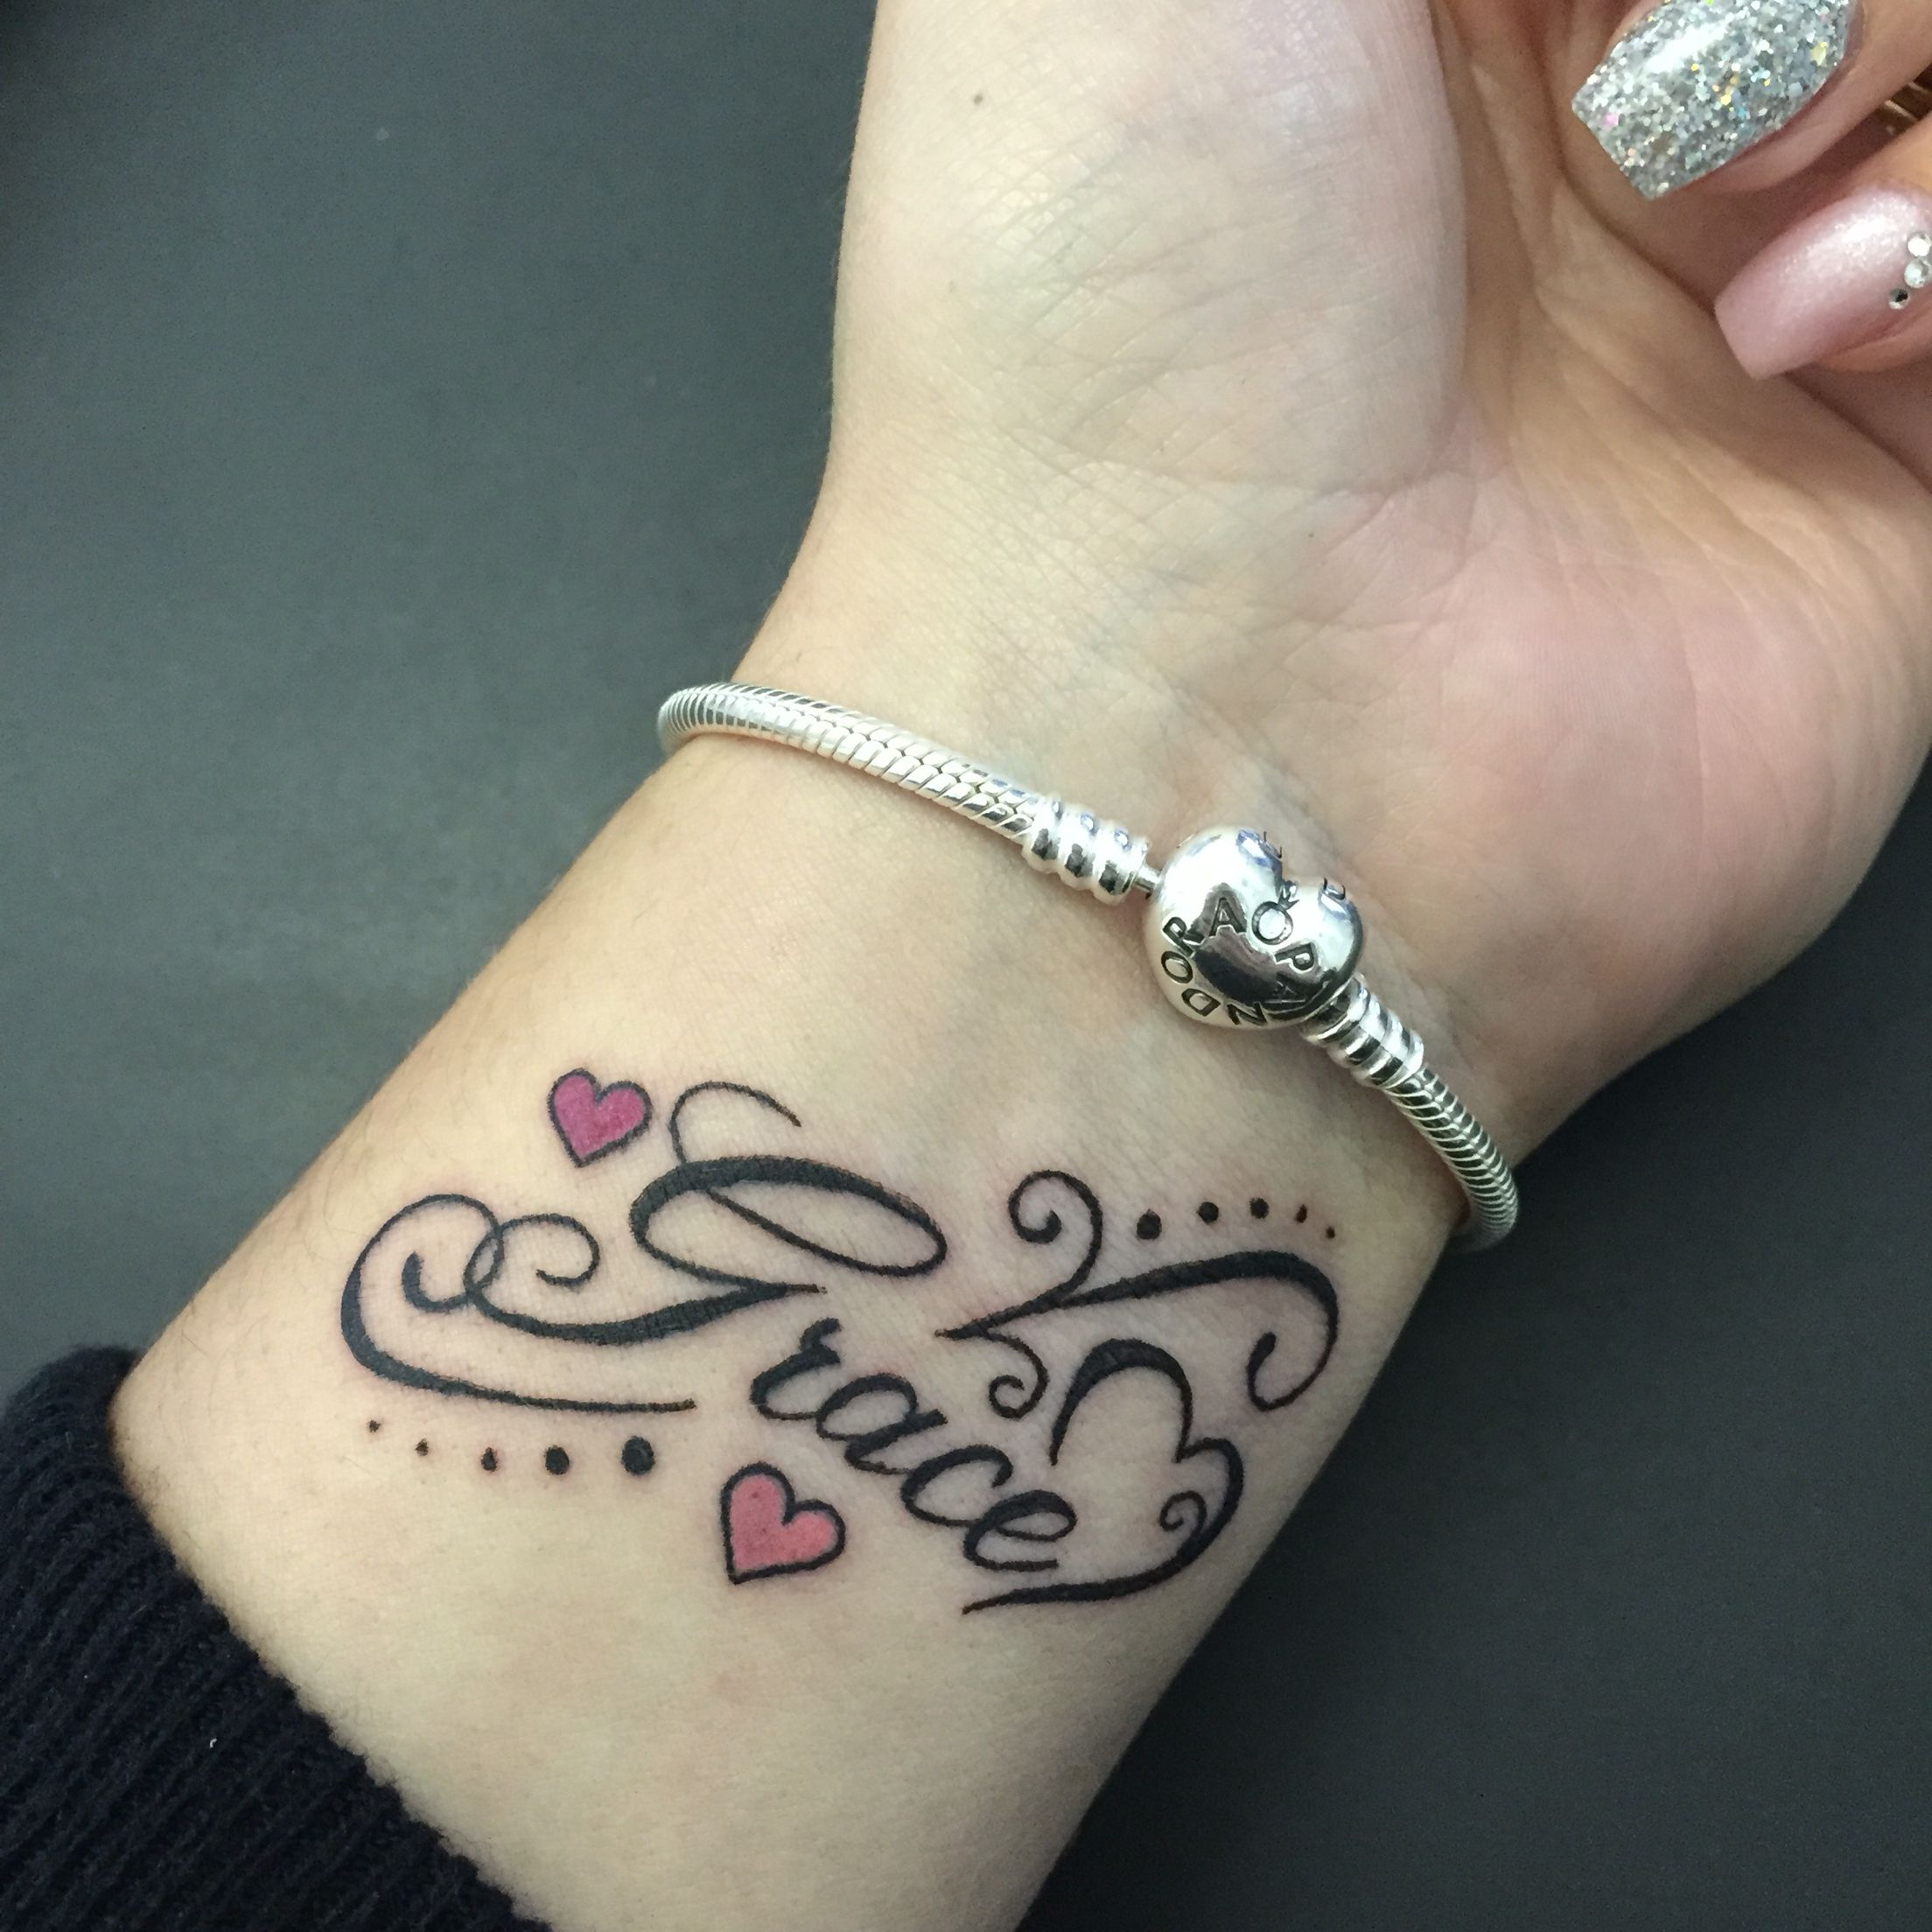 Grace Tattoo Wrist Daughter Wrist Tattoos For Women Tattoos For Daughters Name Tattoos On Wrist